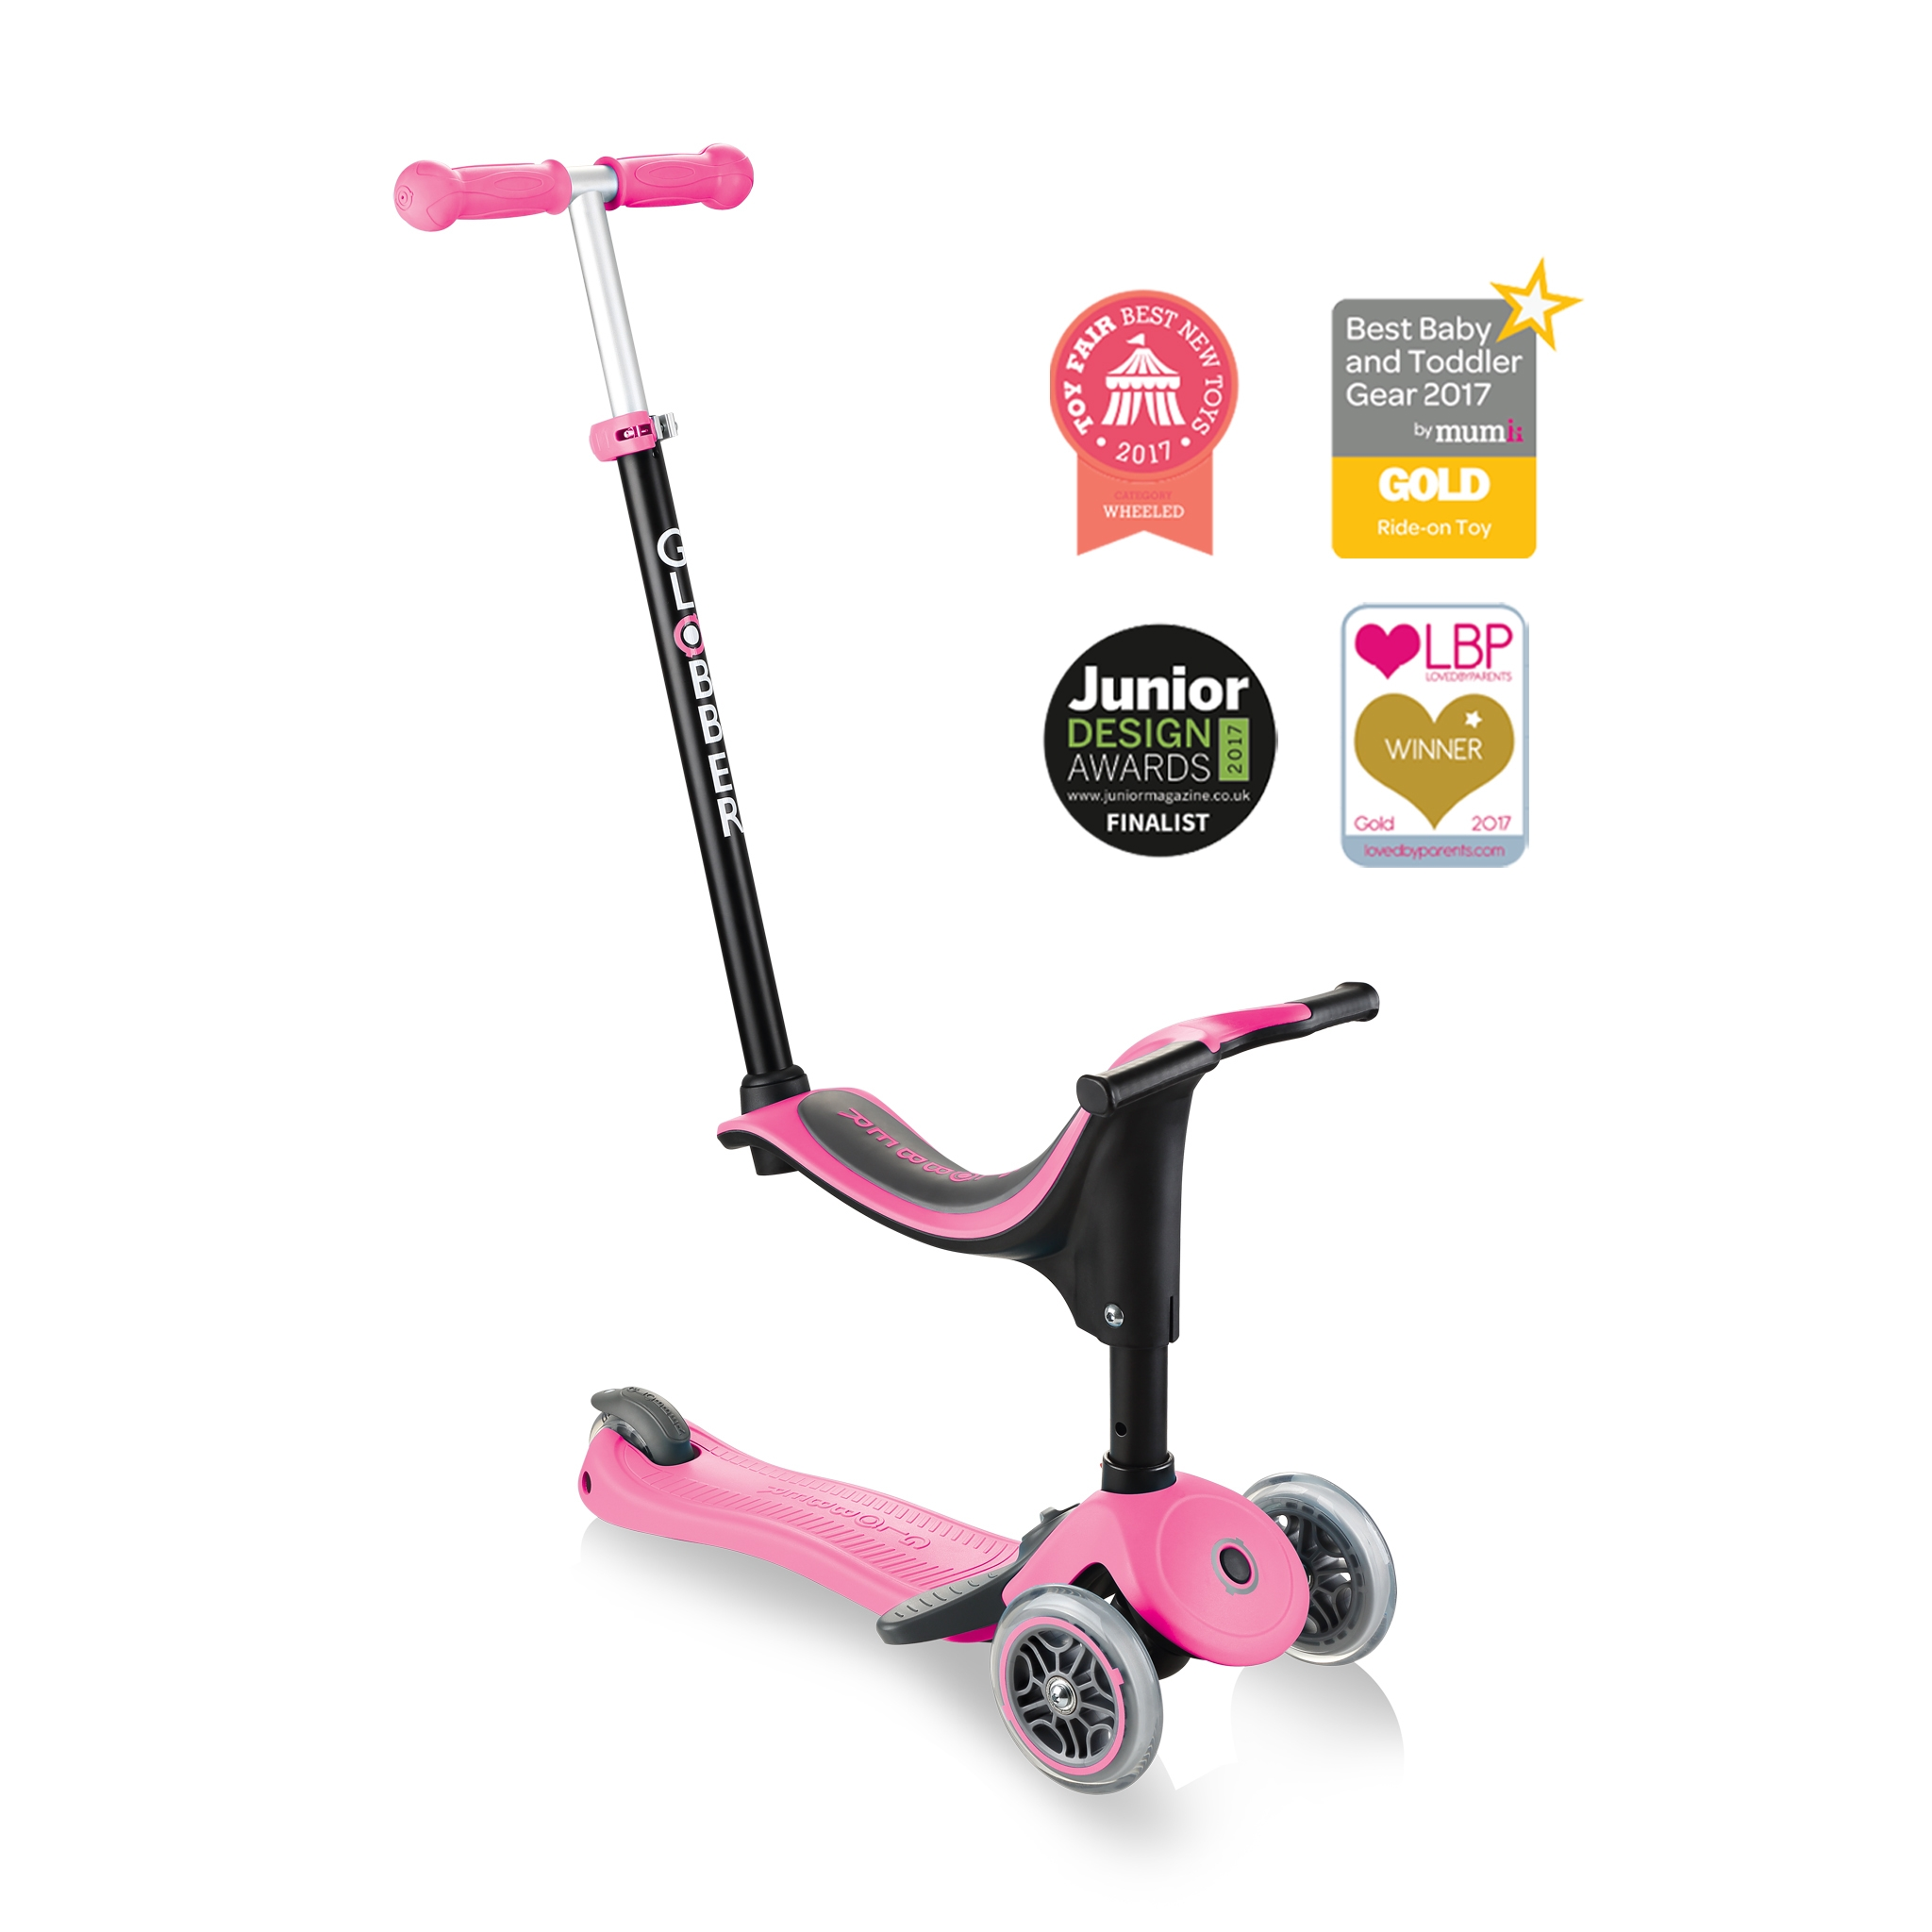 GO-UP-SPORTY-PLUS-LIGHTS-scooter-with-seat-ride-on-mode_deep-pink